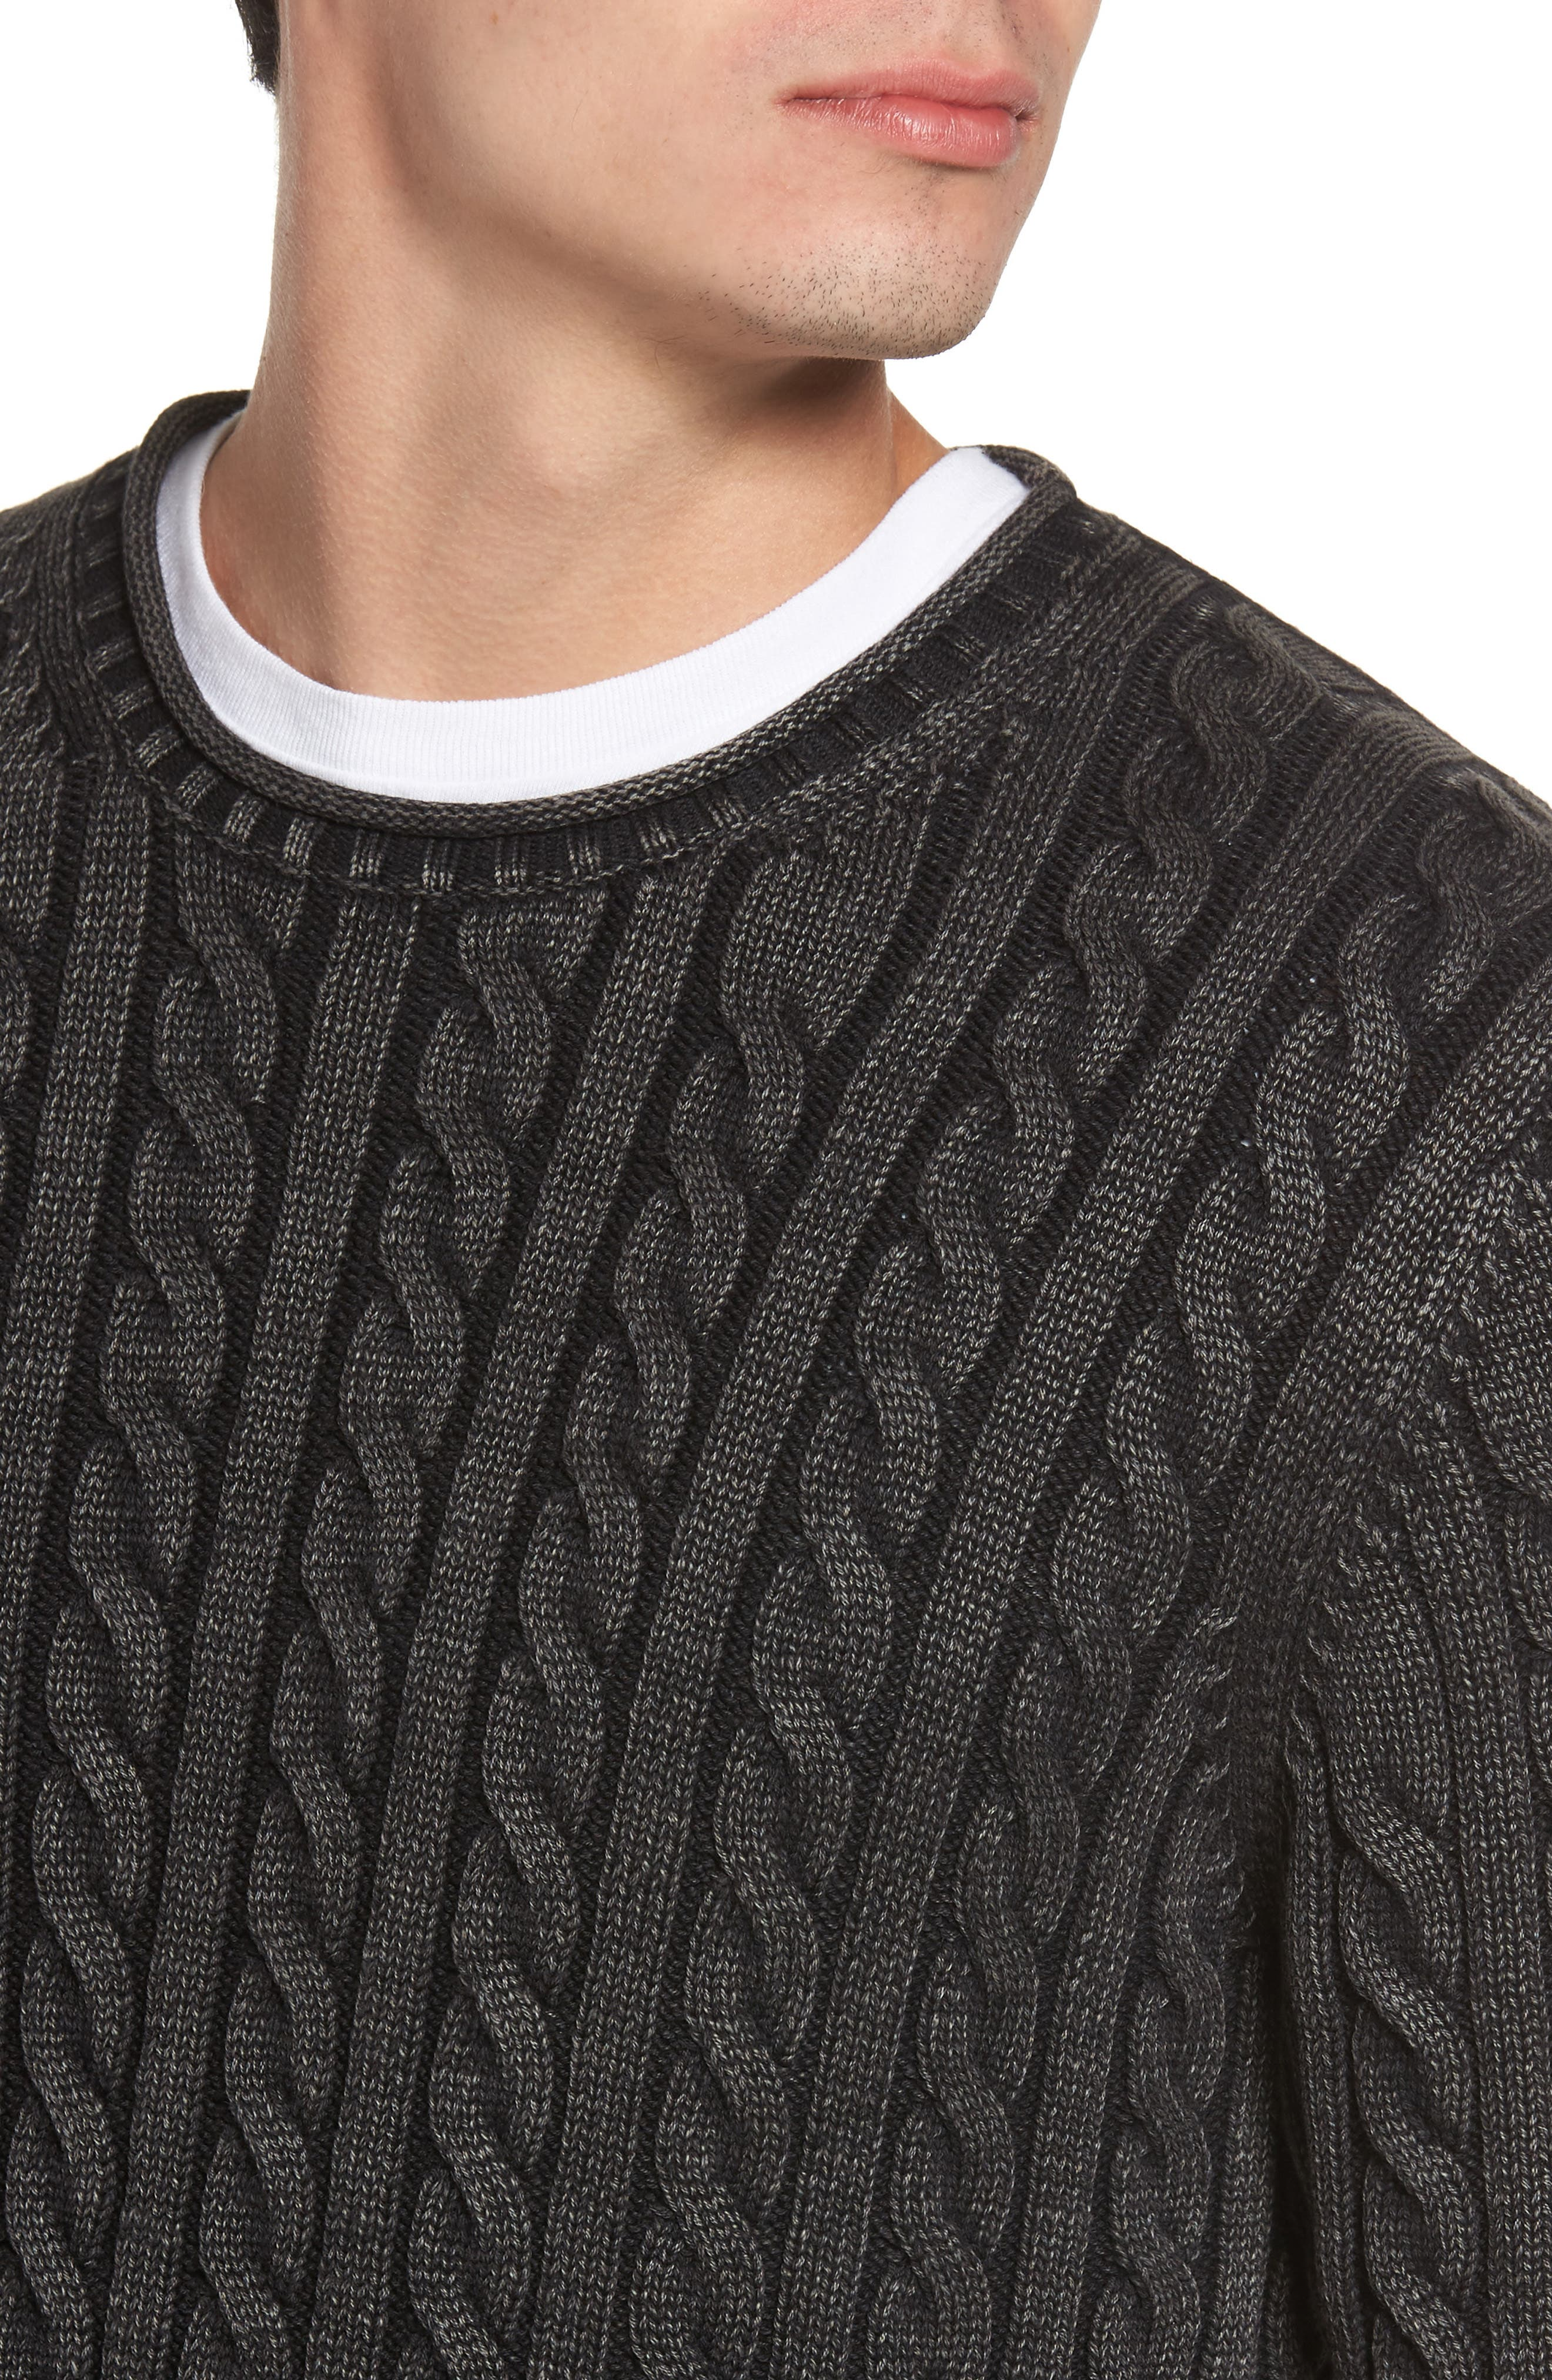 Landray Cable Knit Cotton Sweater,                             Alternate thumbnail 4, color,                             Charcoal